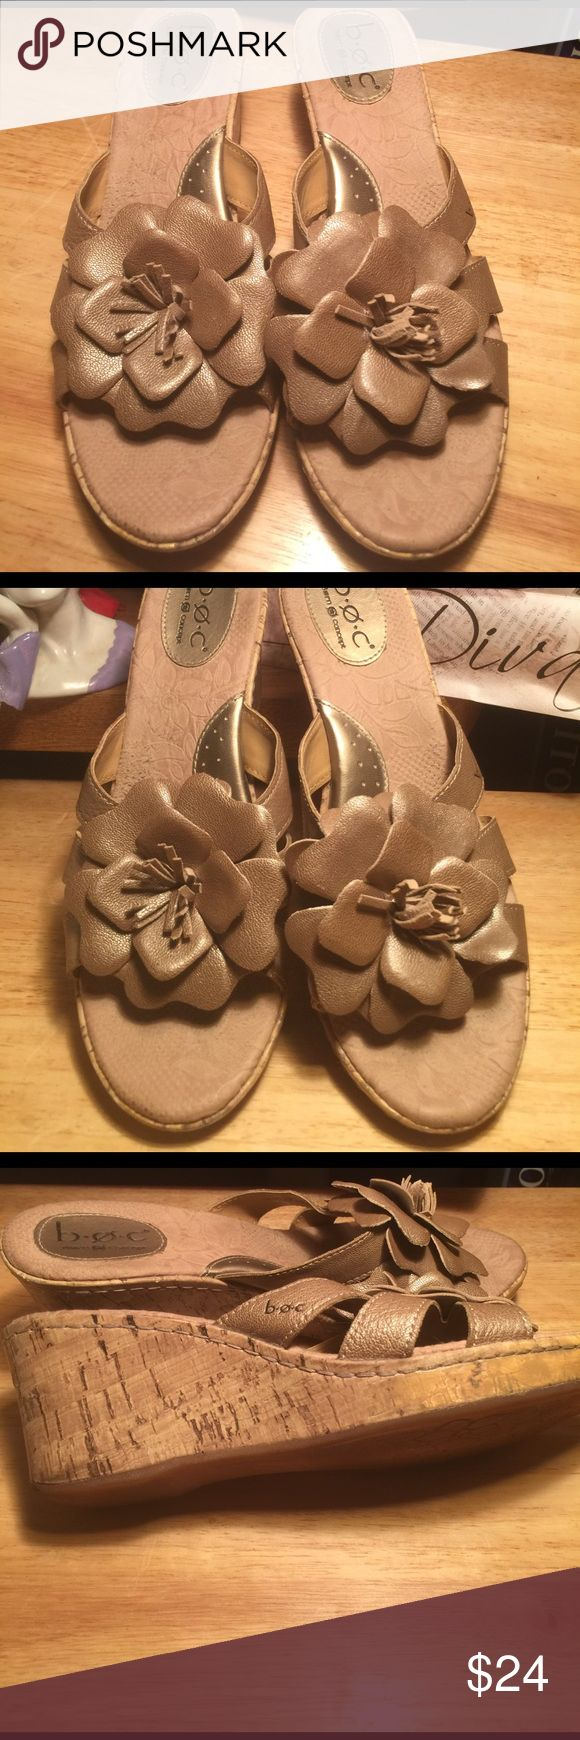 """B.O.C. BORN CONCEPT GOLD WEDGE HEEL SLIDES SZ- 9 B.O.C. BORN CONCEPT GOLD WEDGE HEEL  SLIDES                                                                            These are in excellent used condition.                         SZ- 9  Heel Height - 2 3/4"""" Platform Height - 1"""" Heel To Toe - 10 3/8"""" B.O.C. BORN Shoes Wedges"""